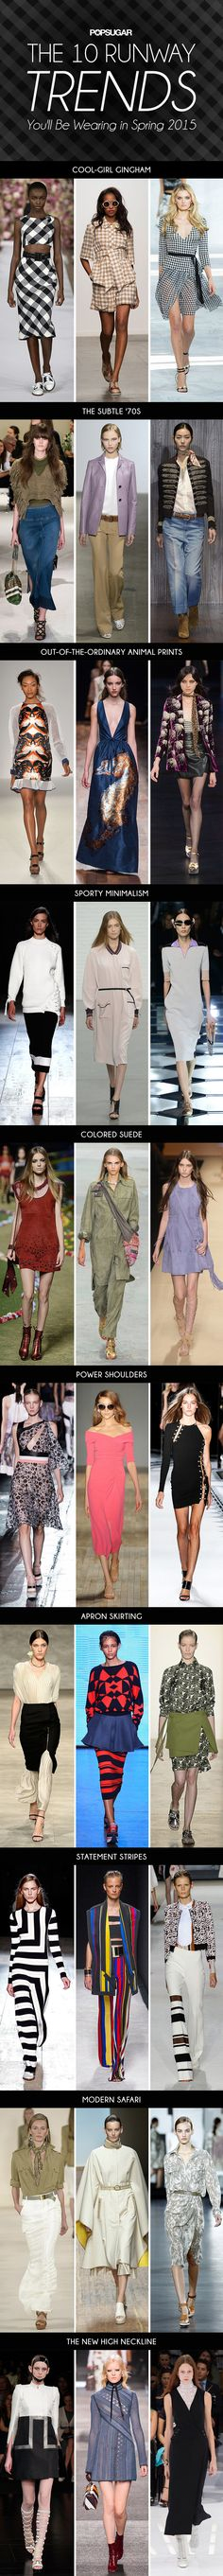 The 10 Runway Trends You'll Be Wearing This Spring Love the Pink Dress